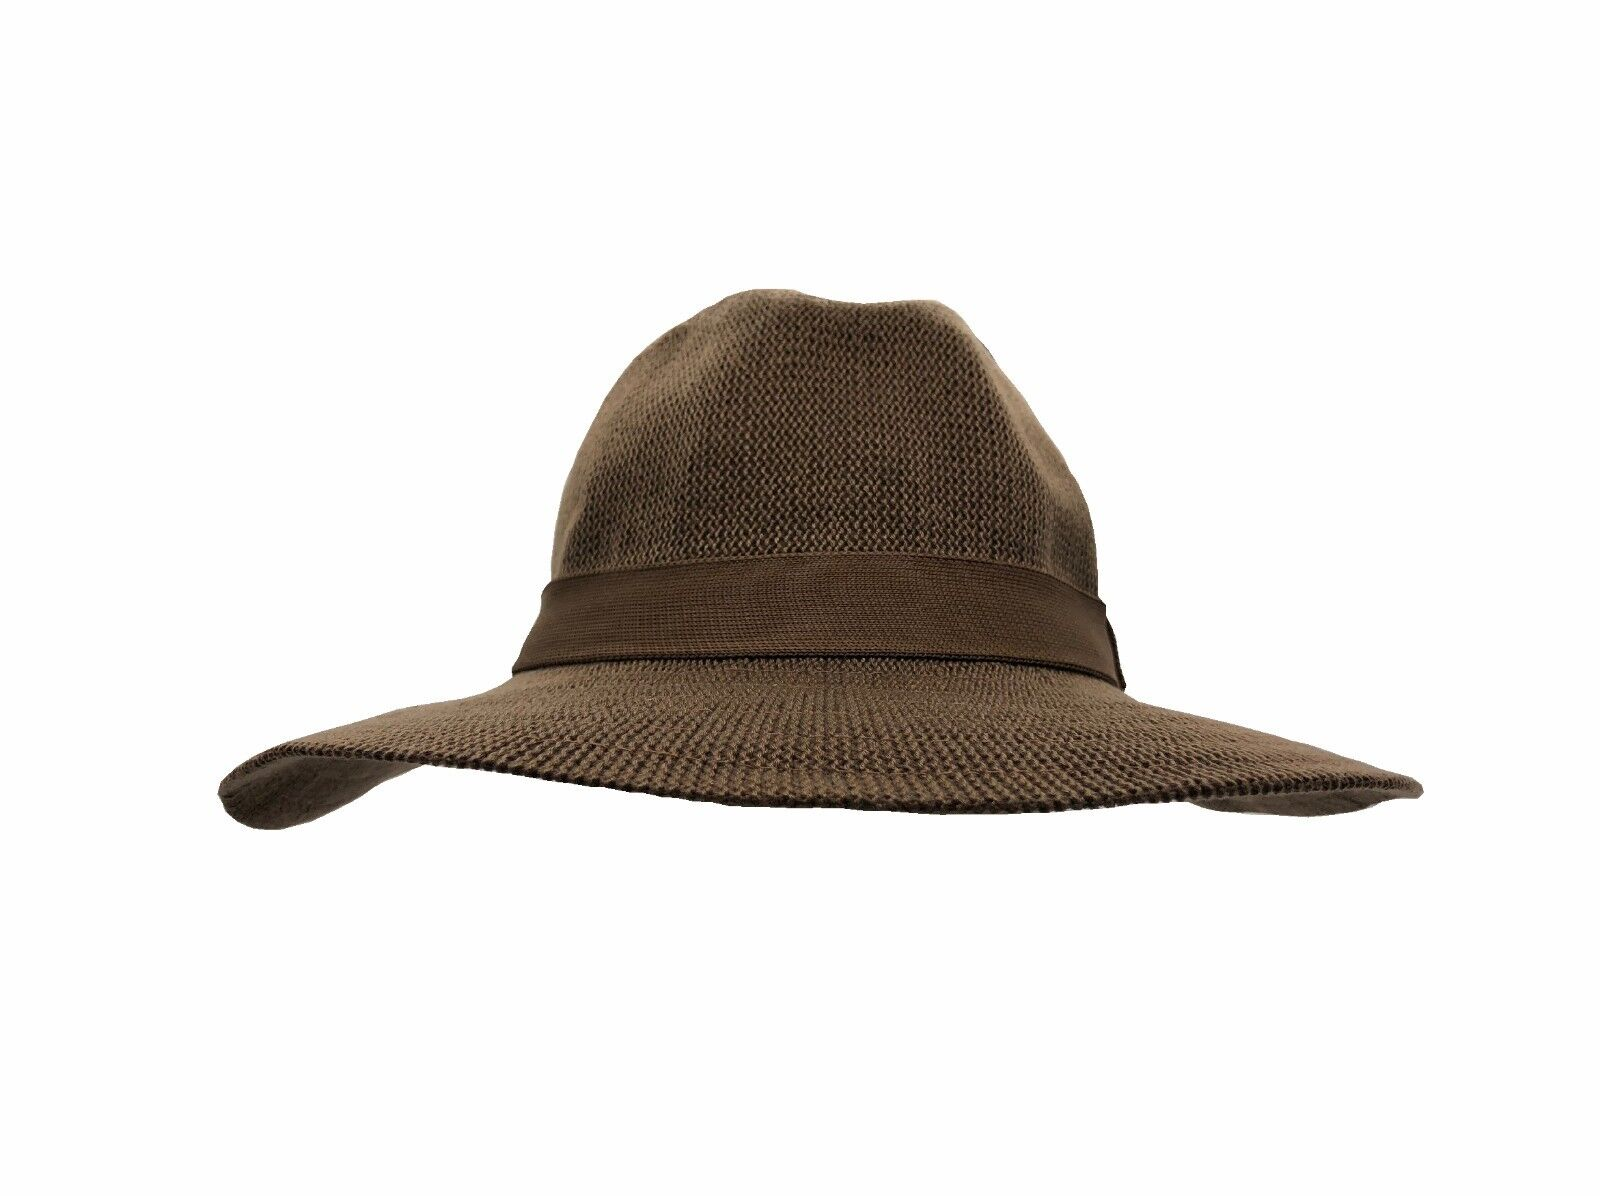 Jacaru Mens Sun Hat Wide Brim Crushable Cream Band Sun Holiday Beach ... e7b9382232dd